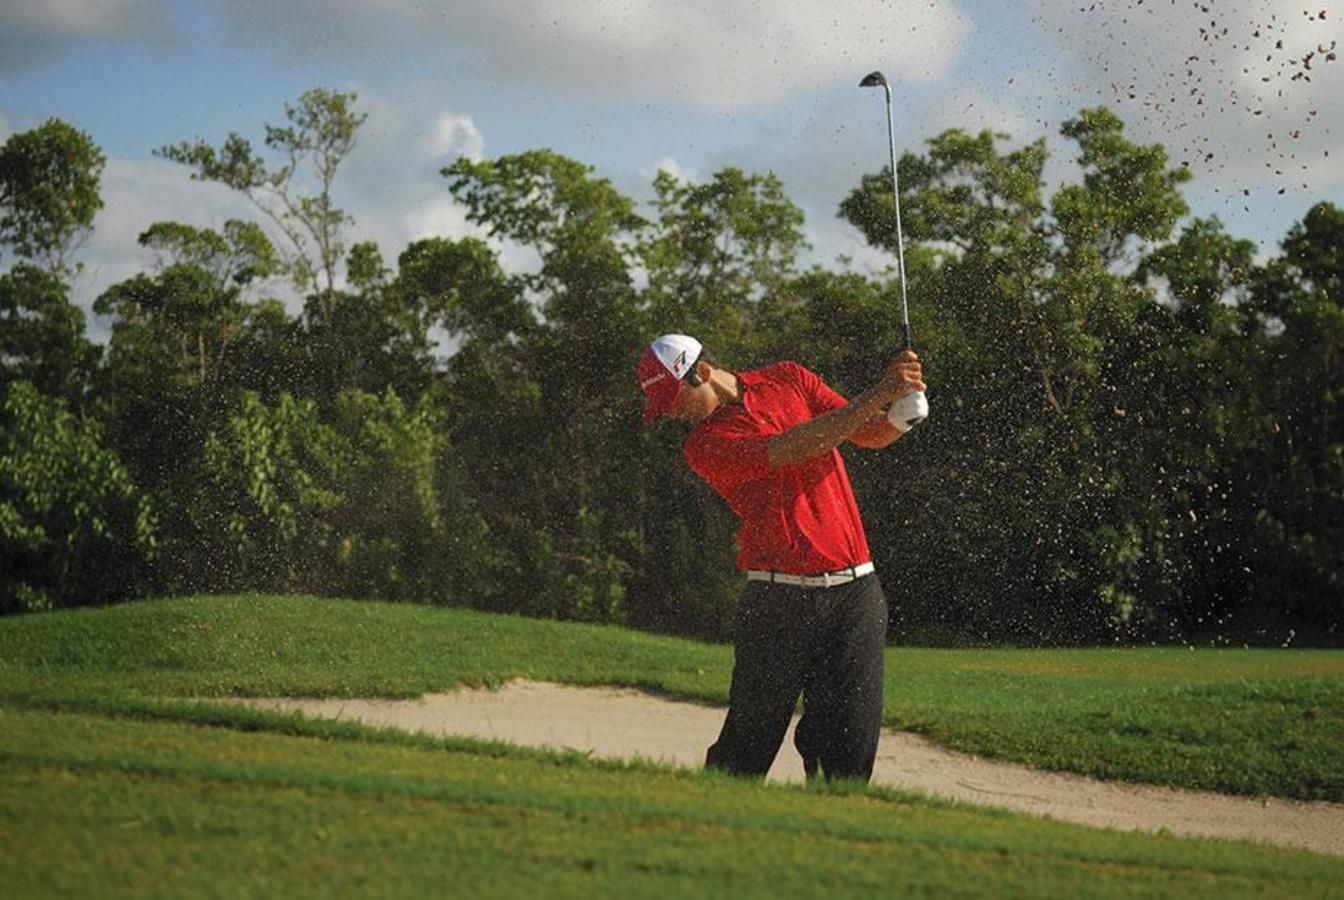 Golfer at Crandon Golf at Key Biscayne